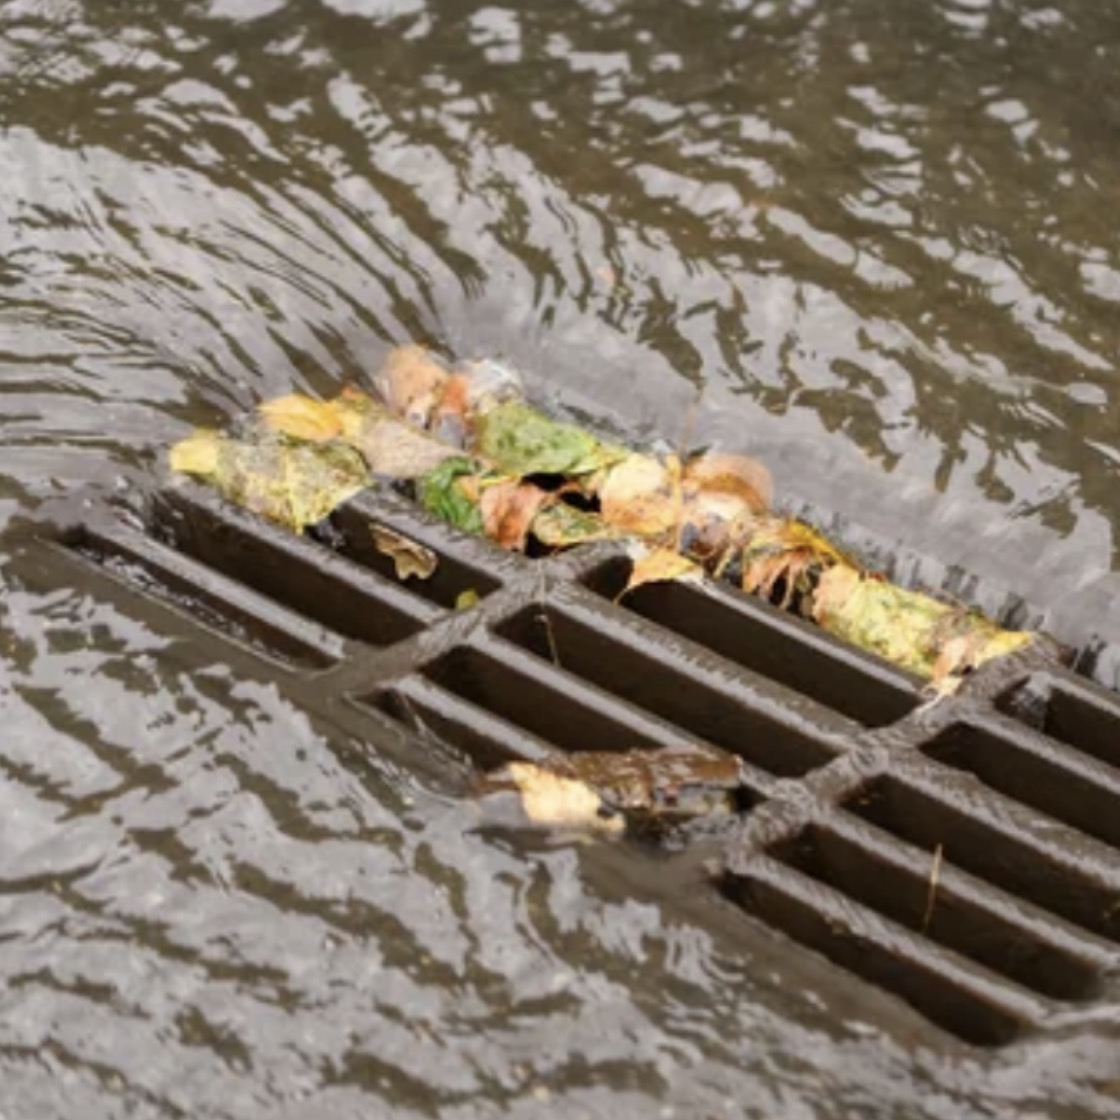 Leaves gathering in the grates of a storm drain surrounded by water